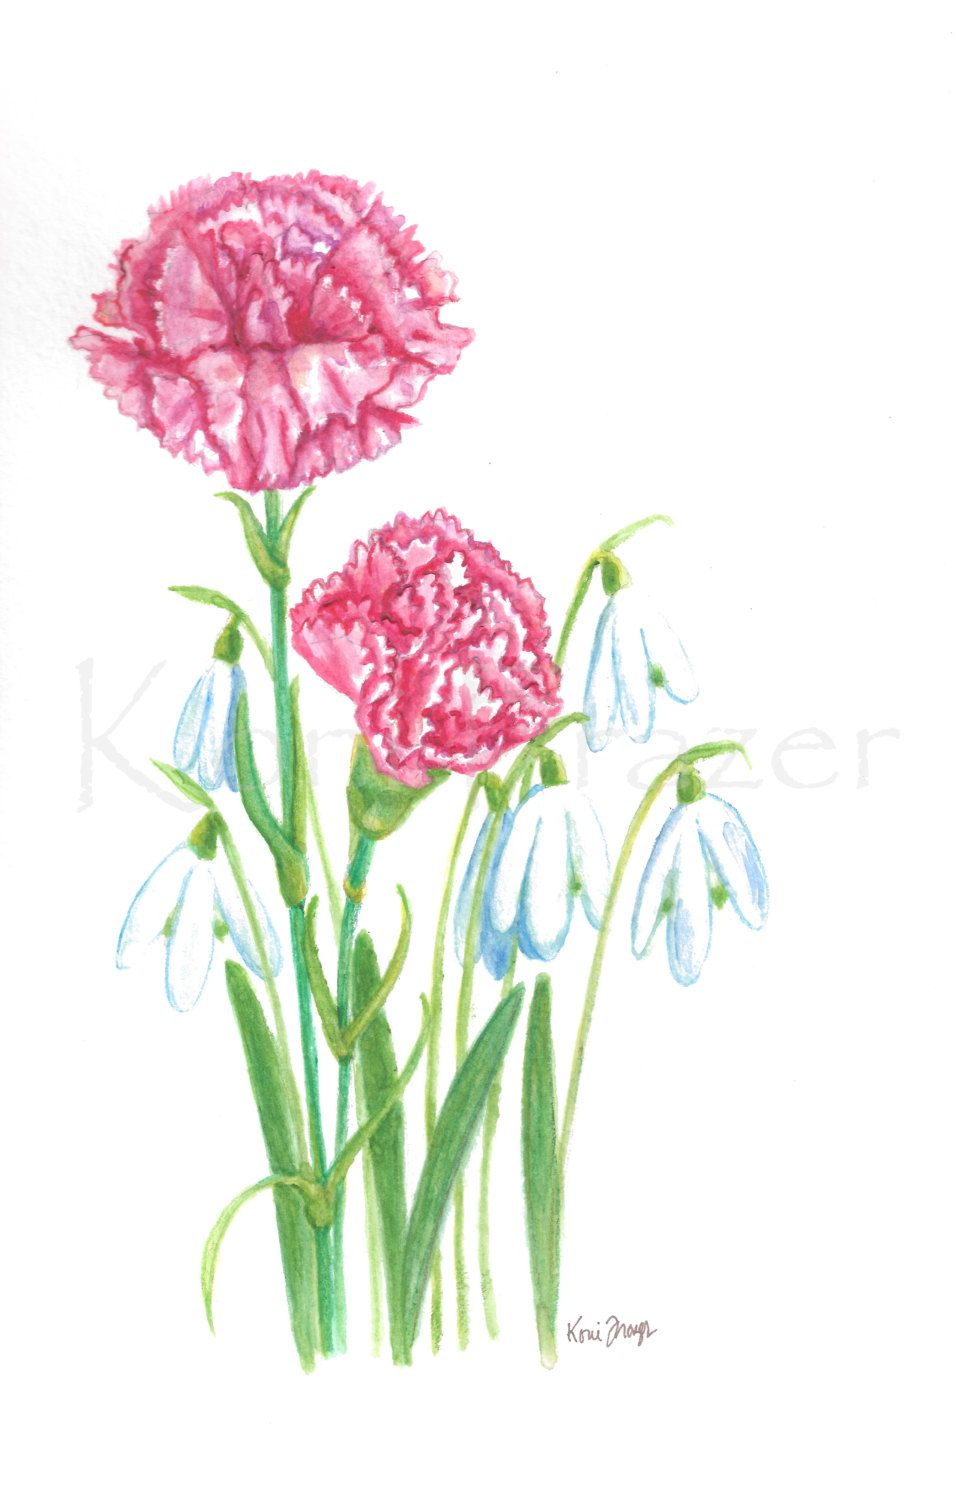 Carnation And Snowdrop January Birthday Flower Original Watercolor Painting Birth Month Flow Birth Month Flowers Birth Flower Tattoos Carnation Flower Tattoo